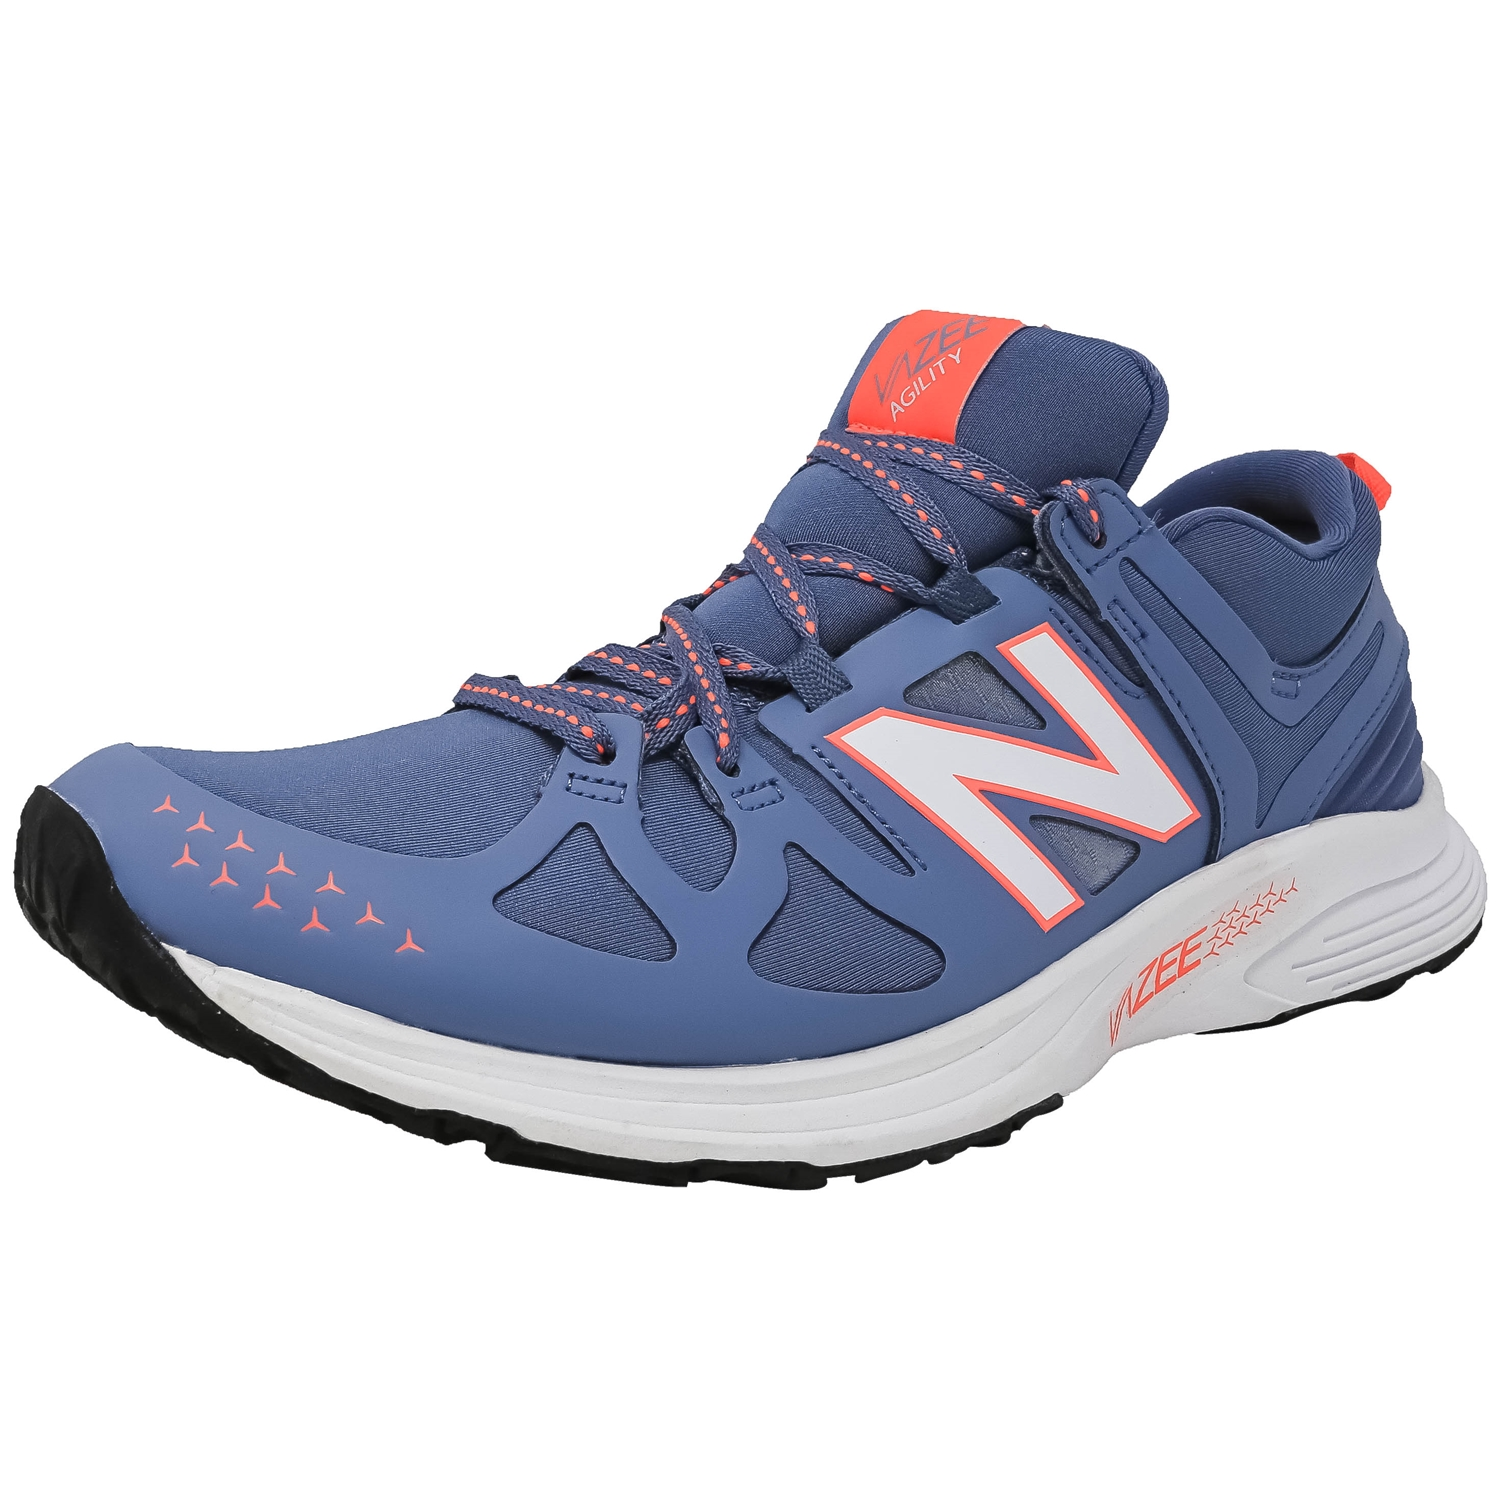 New Balance Women's Wxagl Id Ankle-High Walking Shoe - 10M